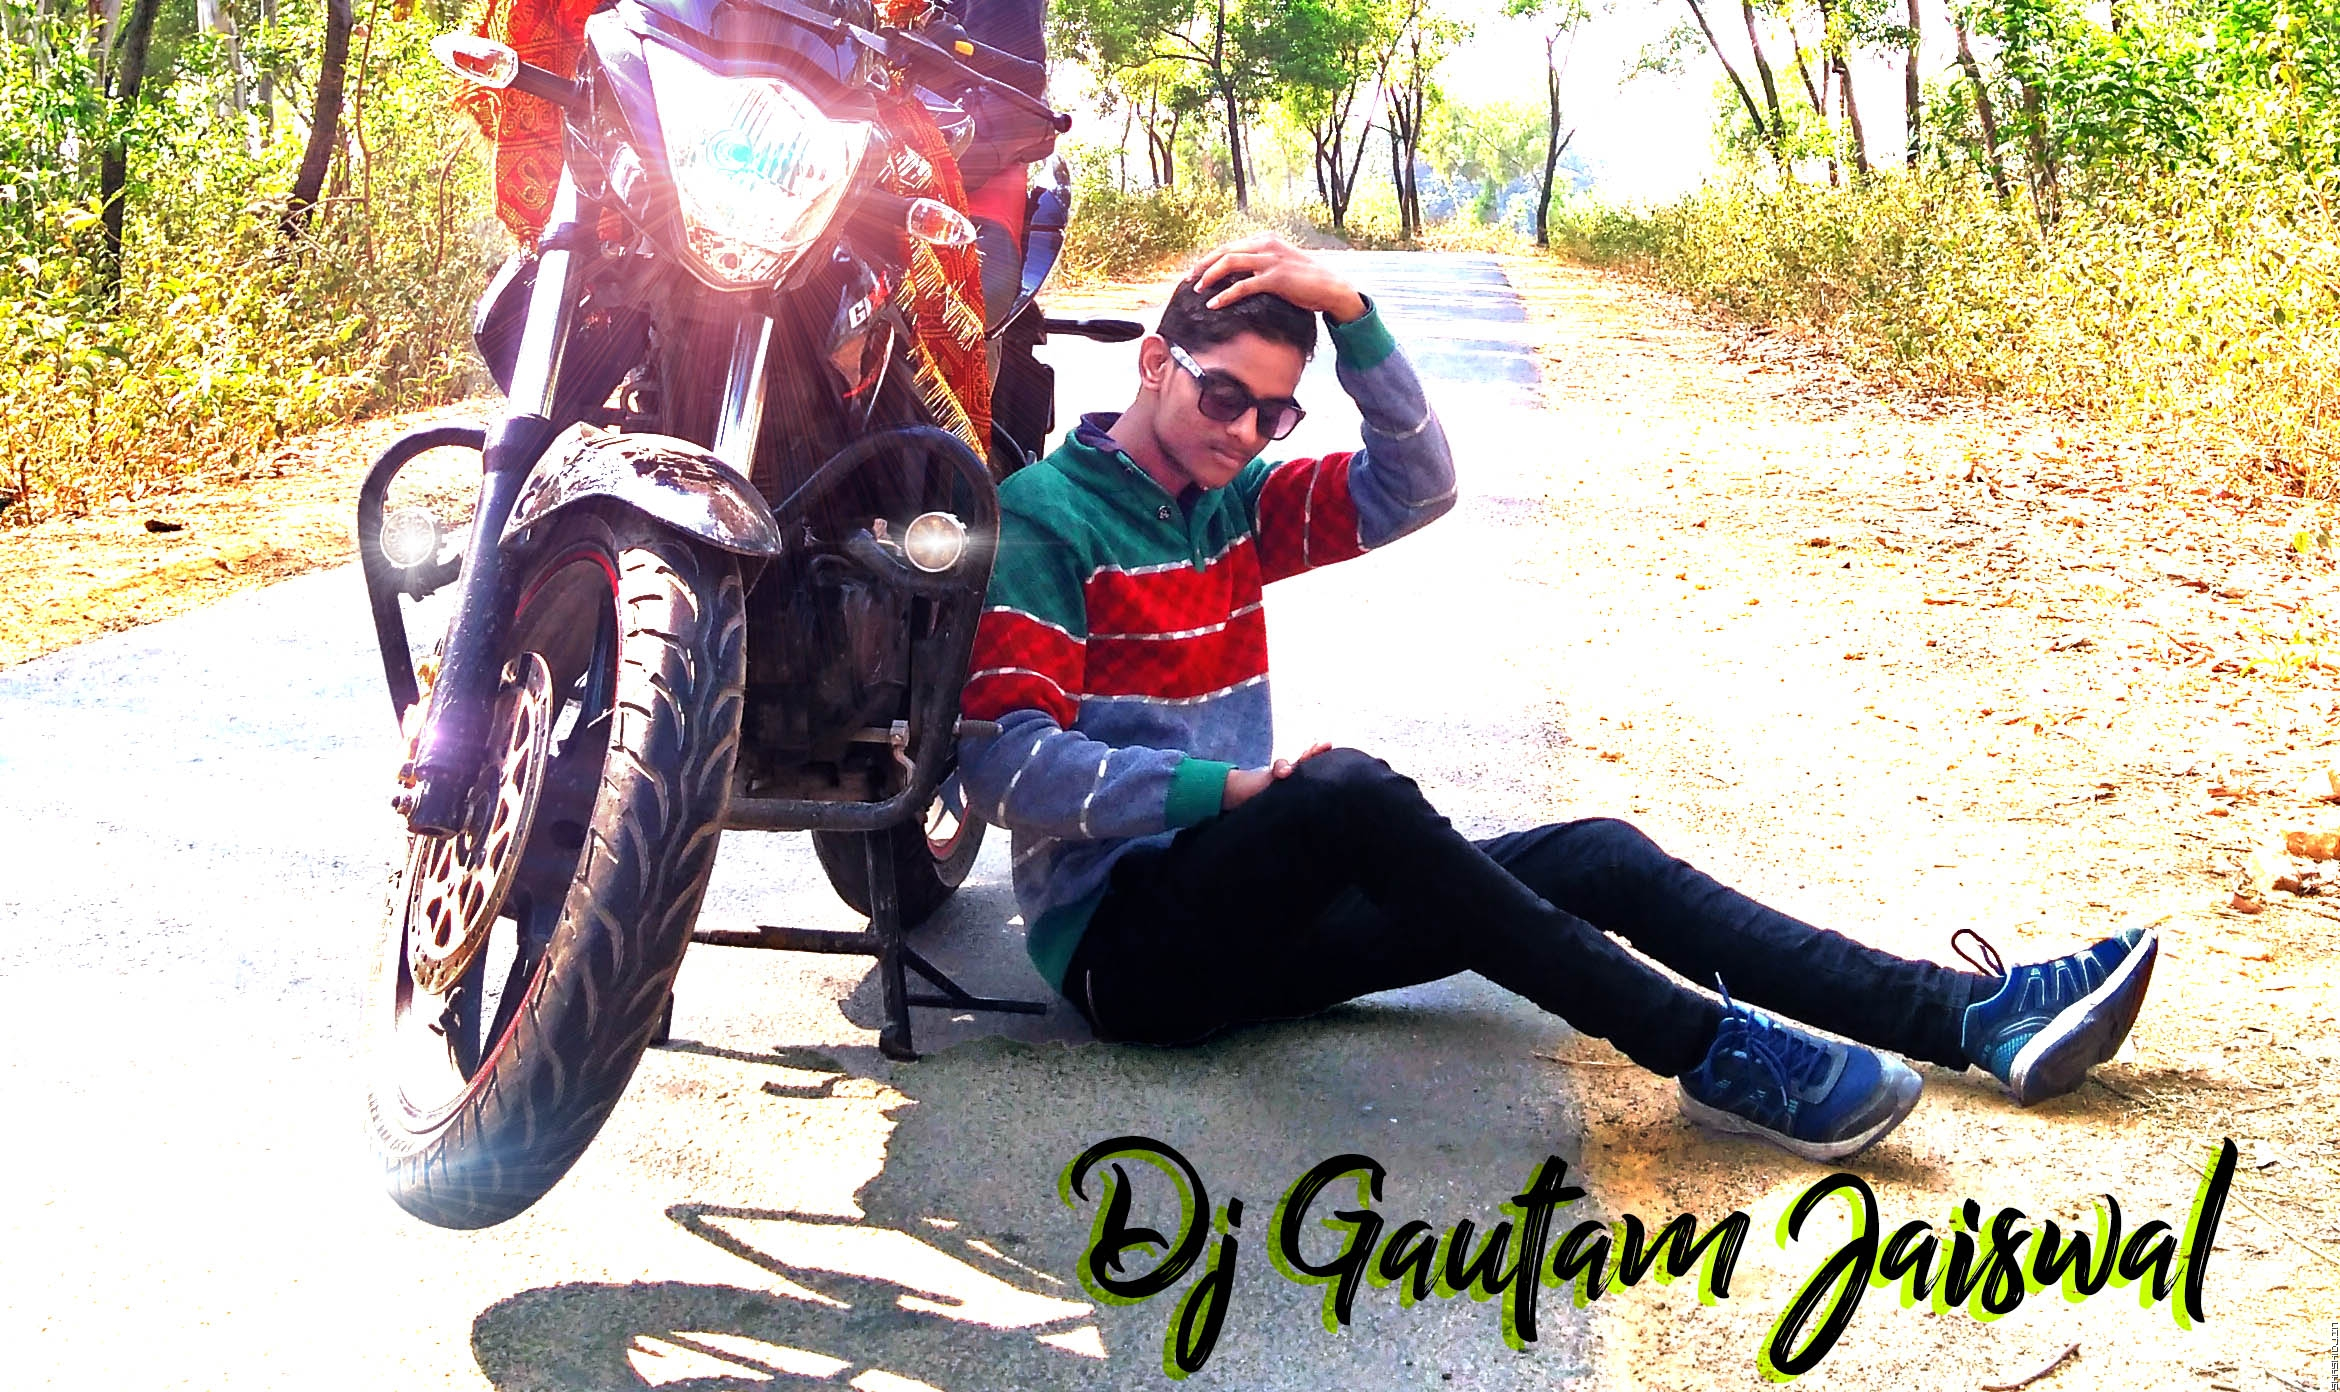 Tu Neendon Ki Rani Aur Main Pyar Ka Sapna (Hindi Love Mix) DjGautam Jaiswal.mp3